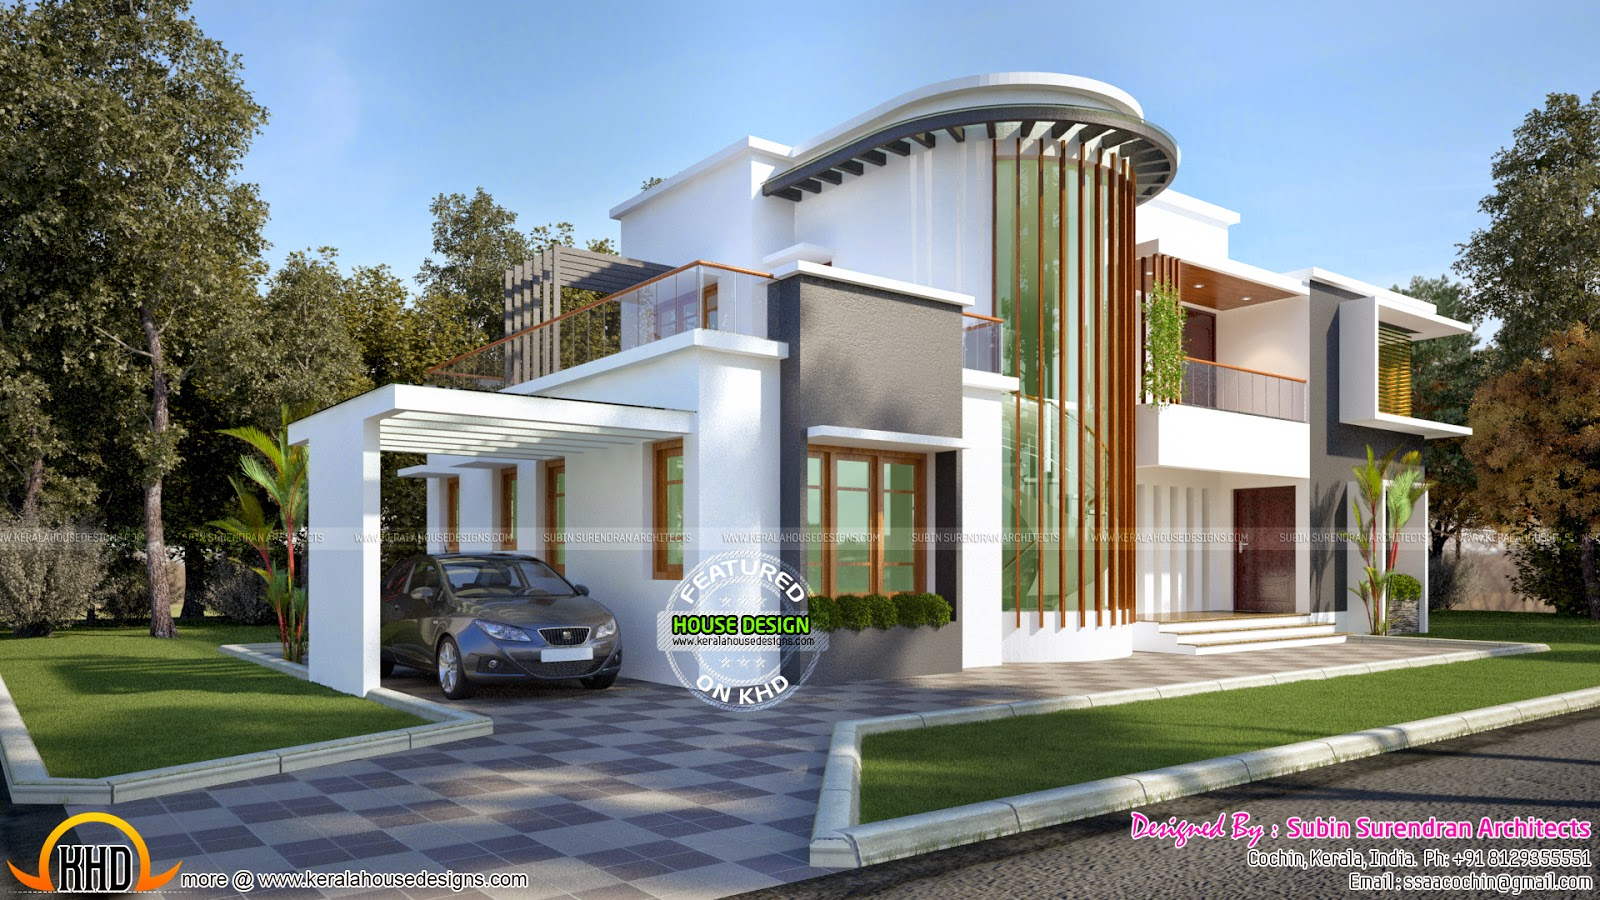 new modern villa plan kerala home design and floor plans. Black Bedroom Furniture Sets. Home Design Ideas